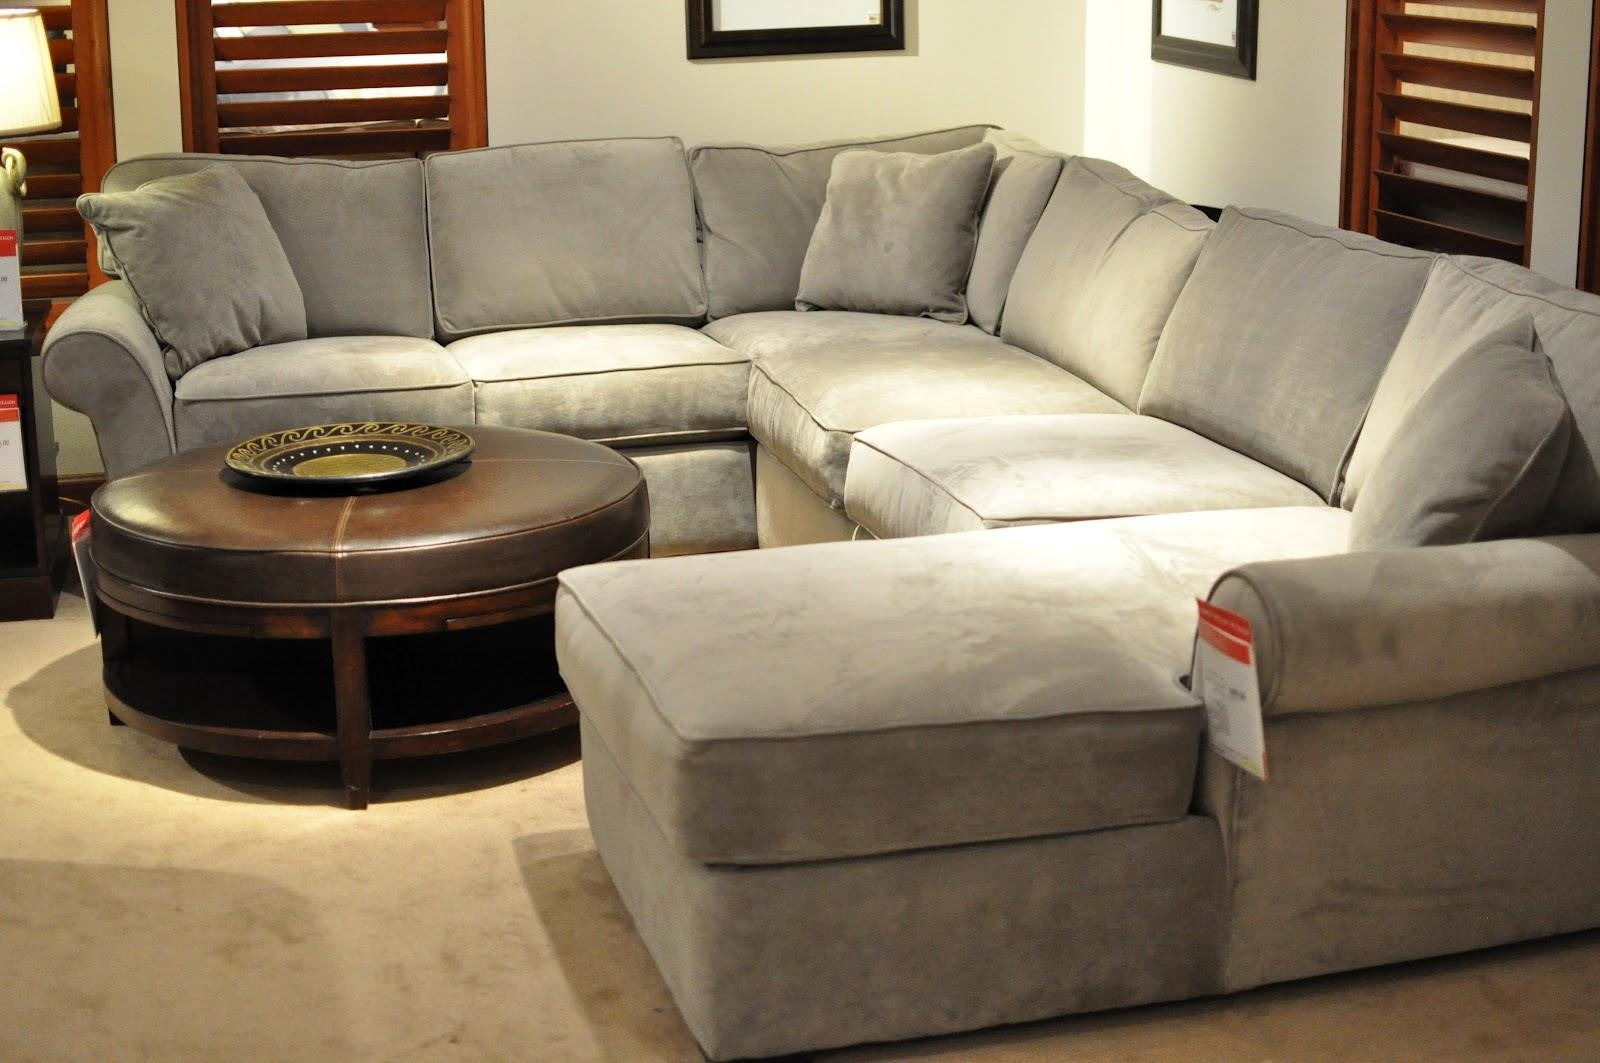 Not So Newlywed Mcgees: Shopping For A Sectional Regarding West Elm Sectionals (Image 16 of 20)